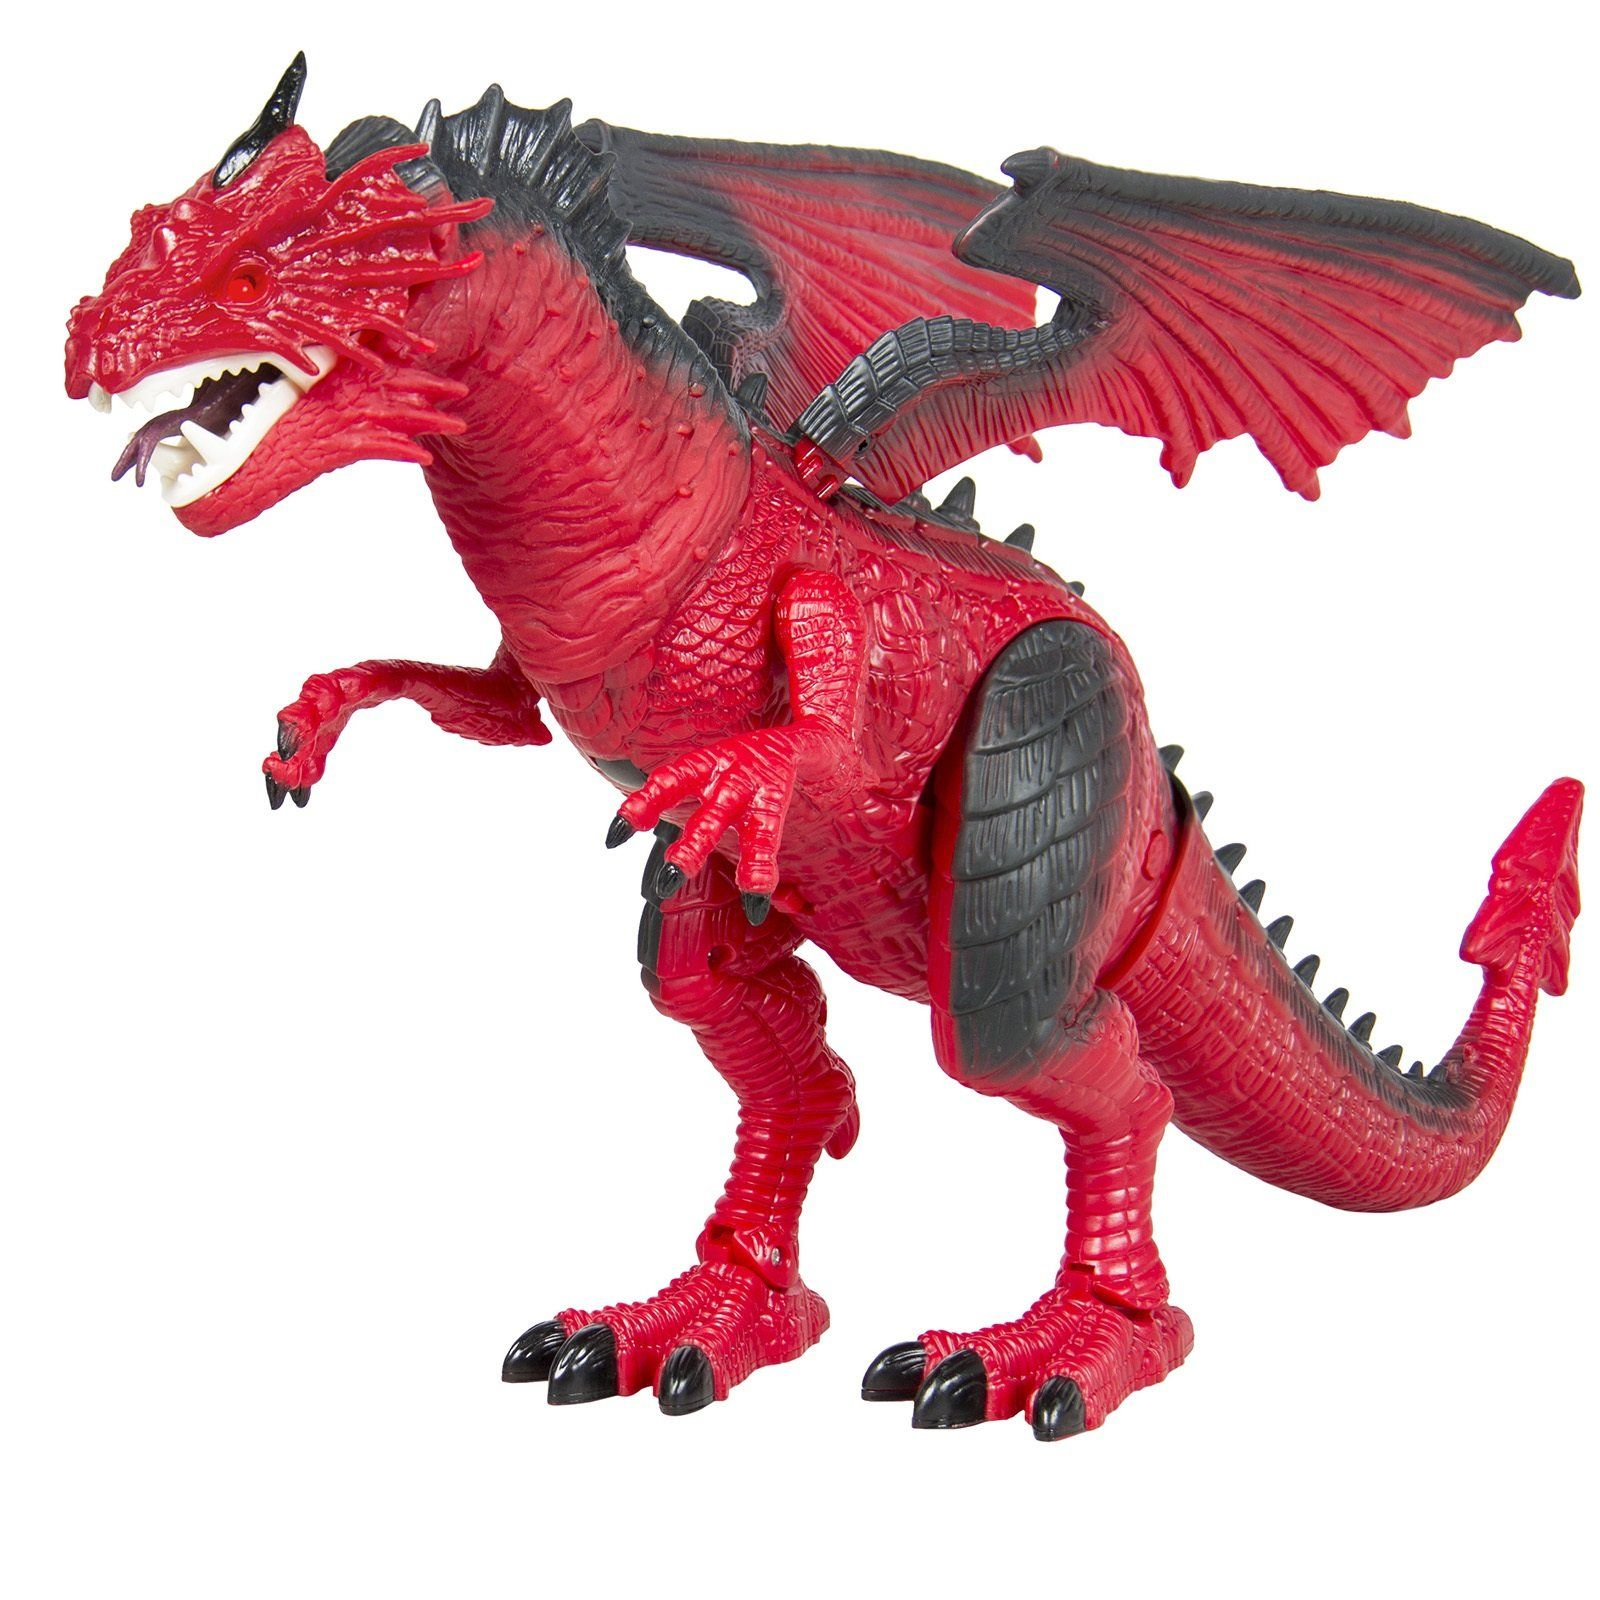 Planet Dinosaur Dragon Battery Operated Sound Walking Toy Dinosaur Flap Wings